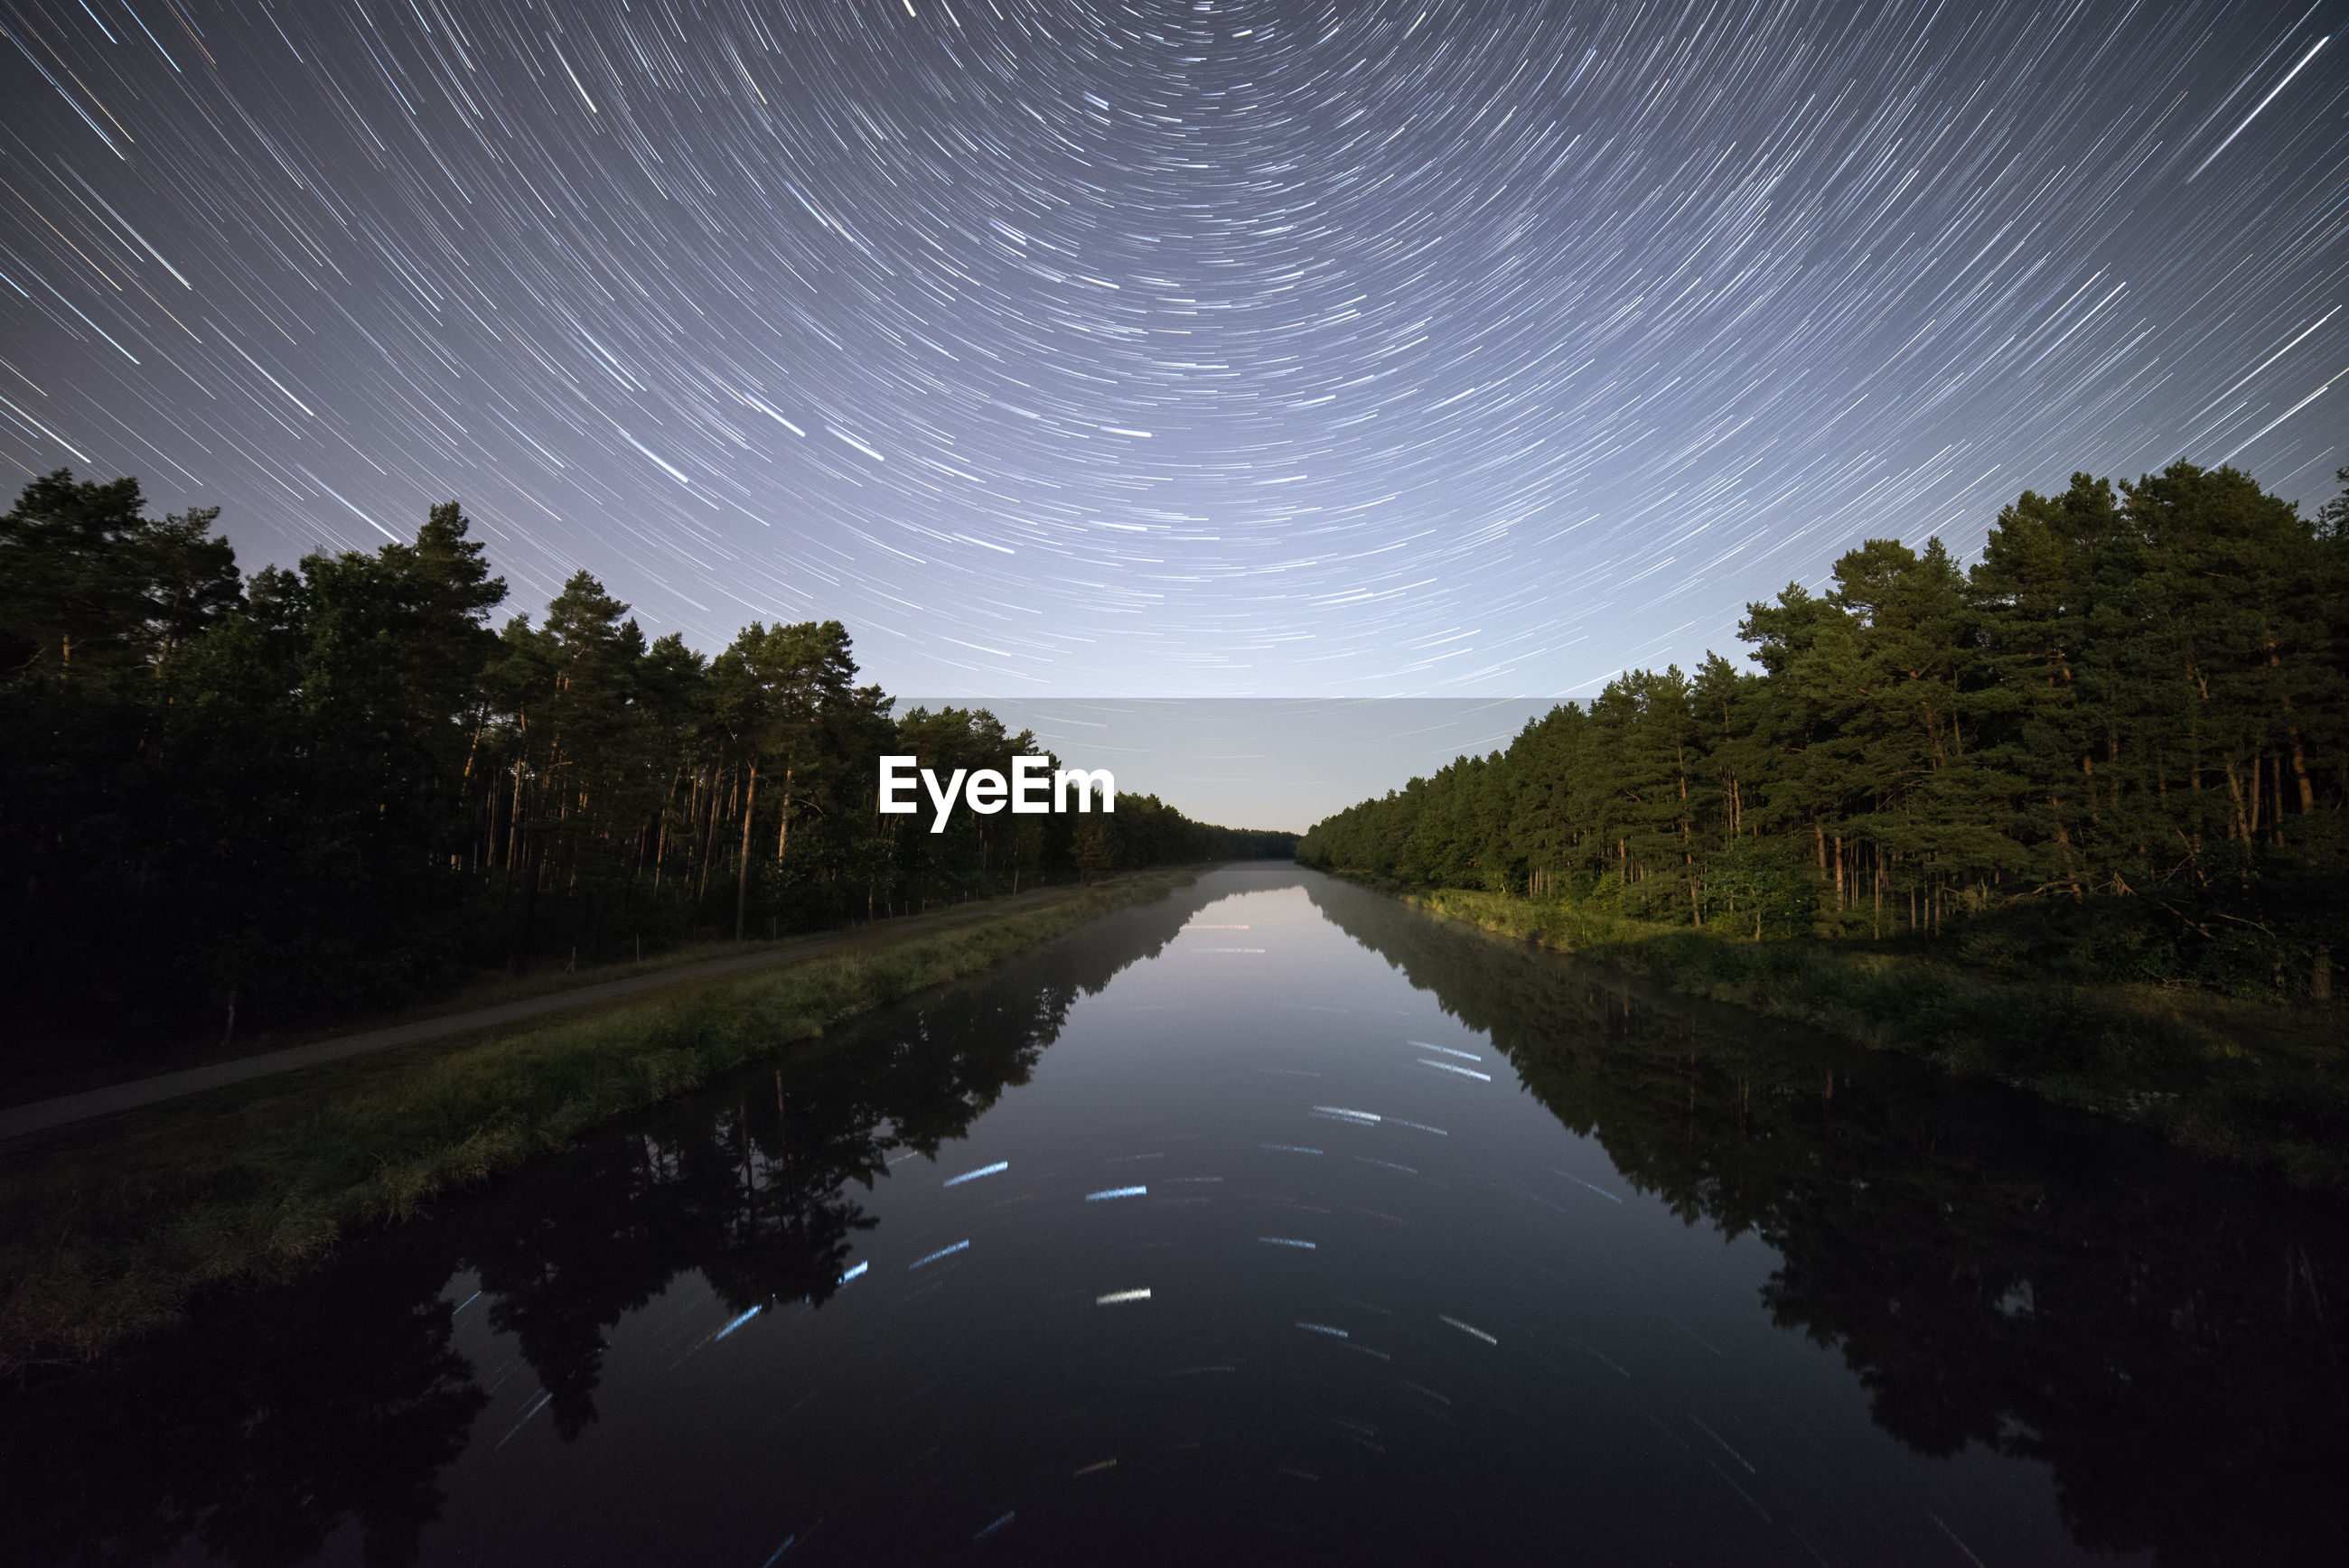 REFLECTION OF TREES IN WATER AT NIGHT